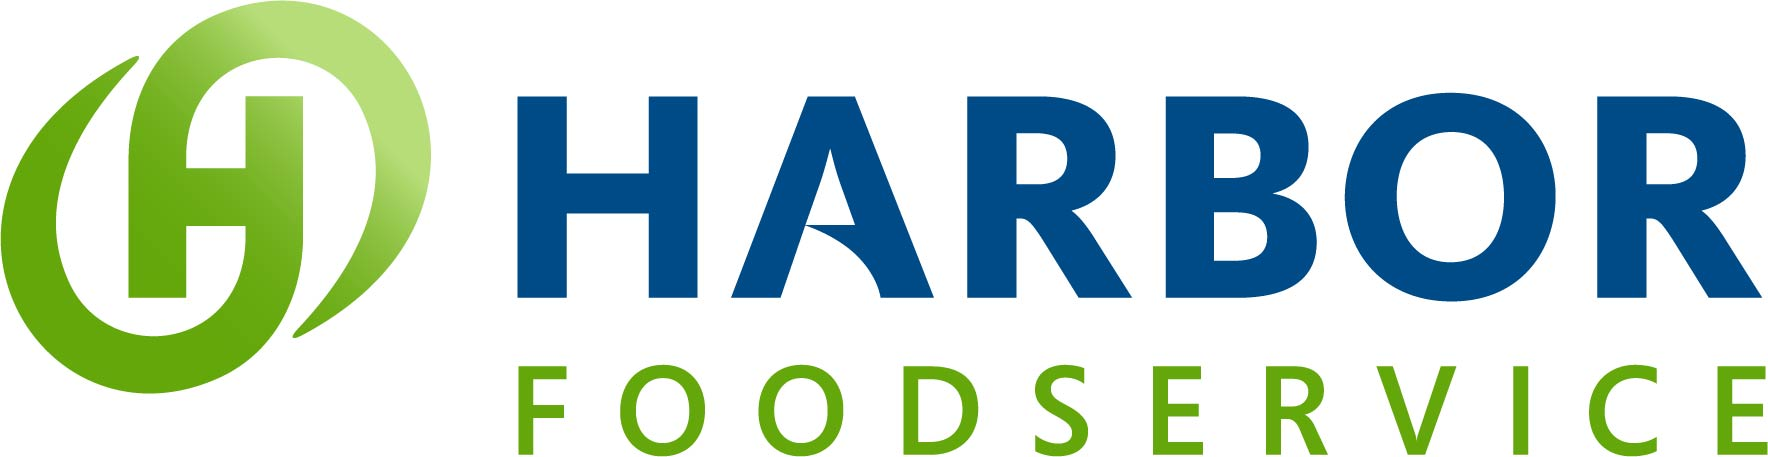 Harbor Foodservice